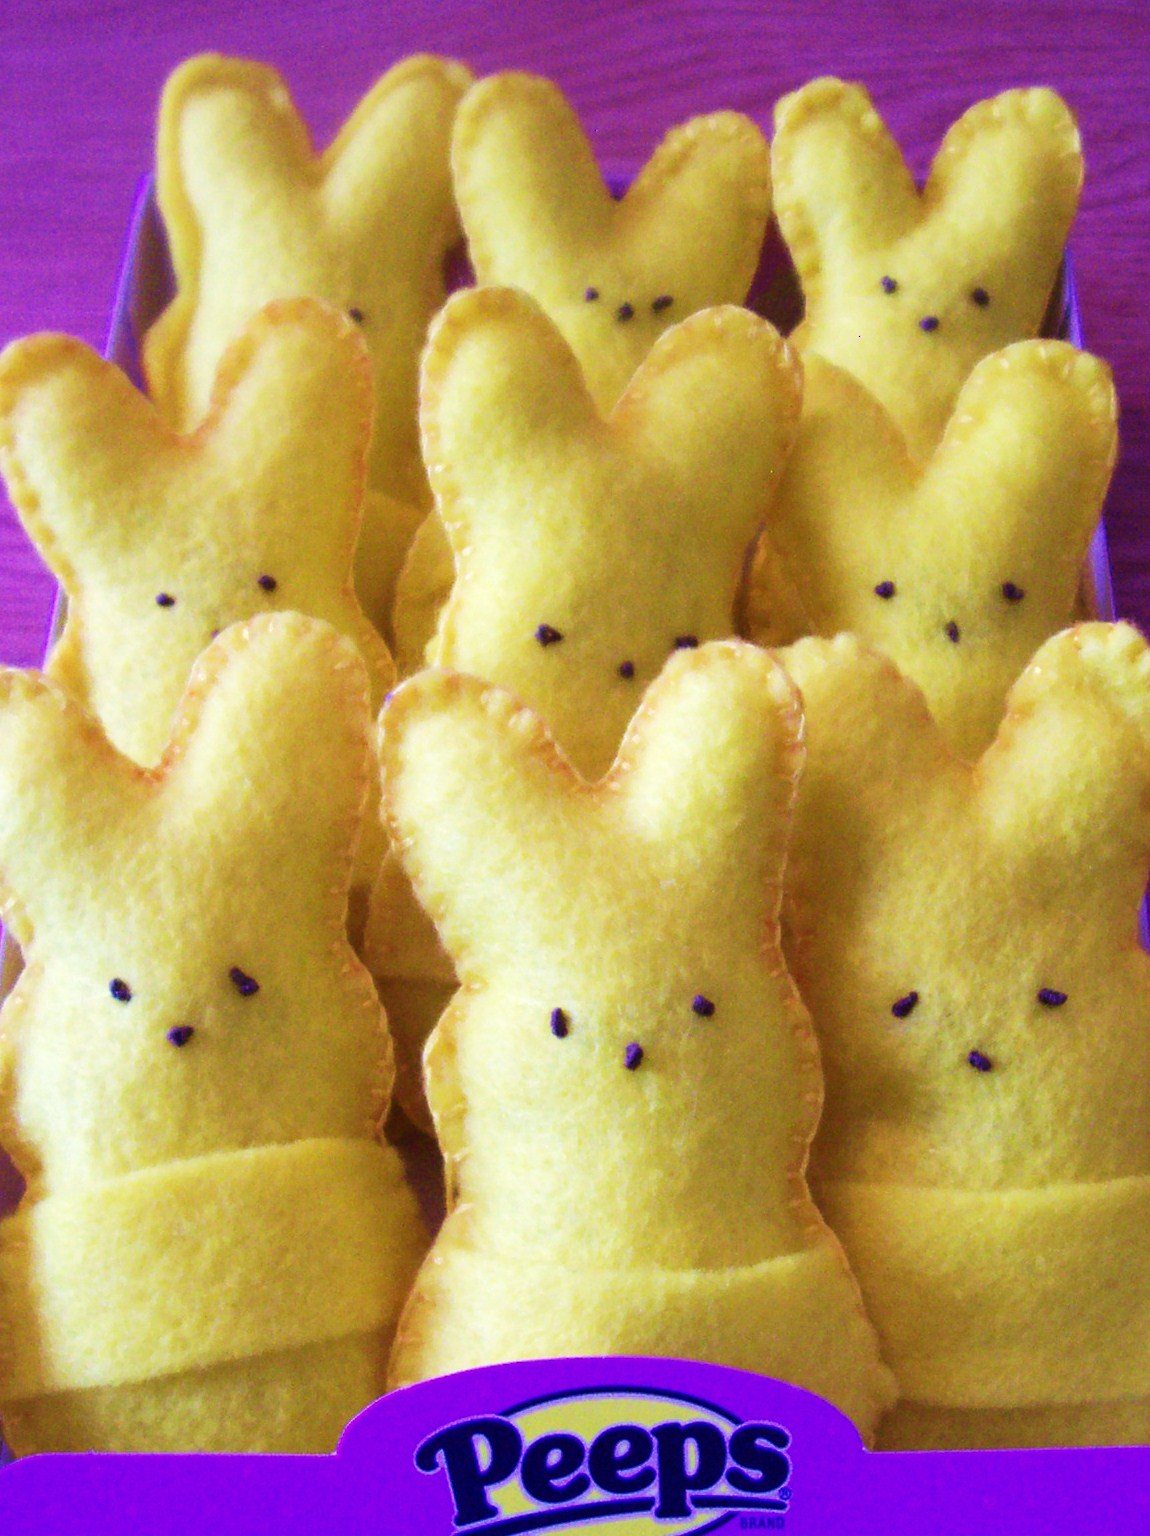 Felt Peeps Bunnies Easter Craft